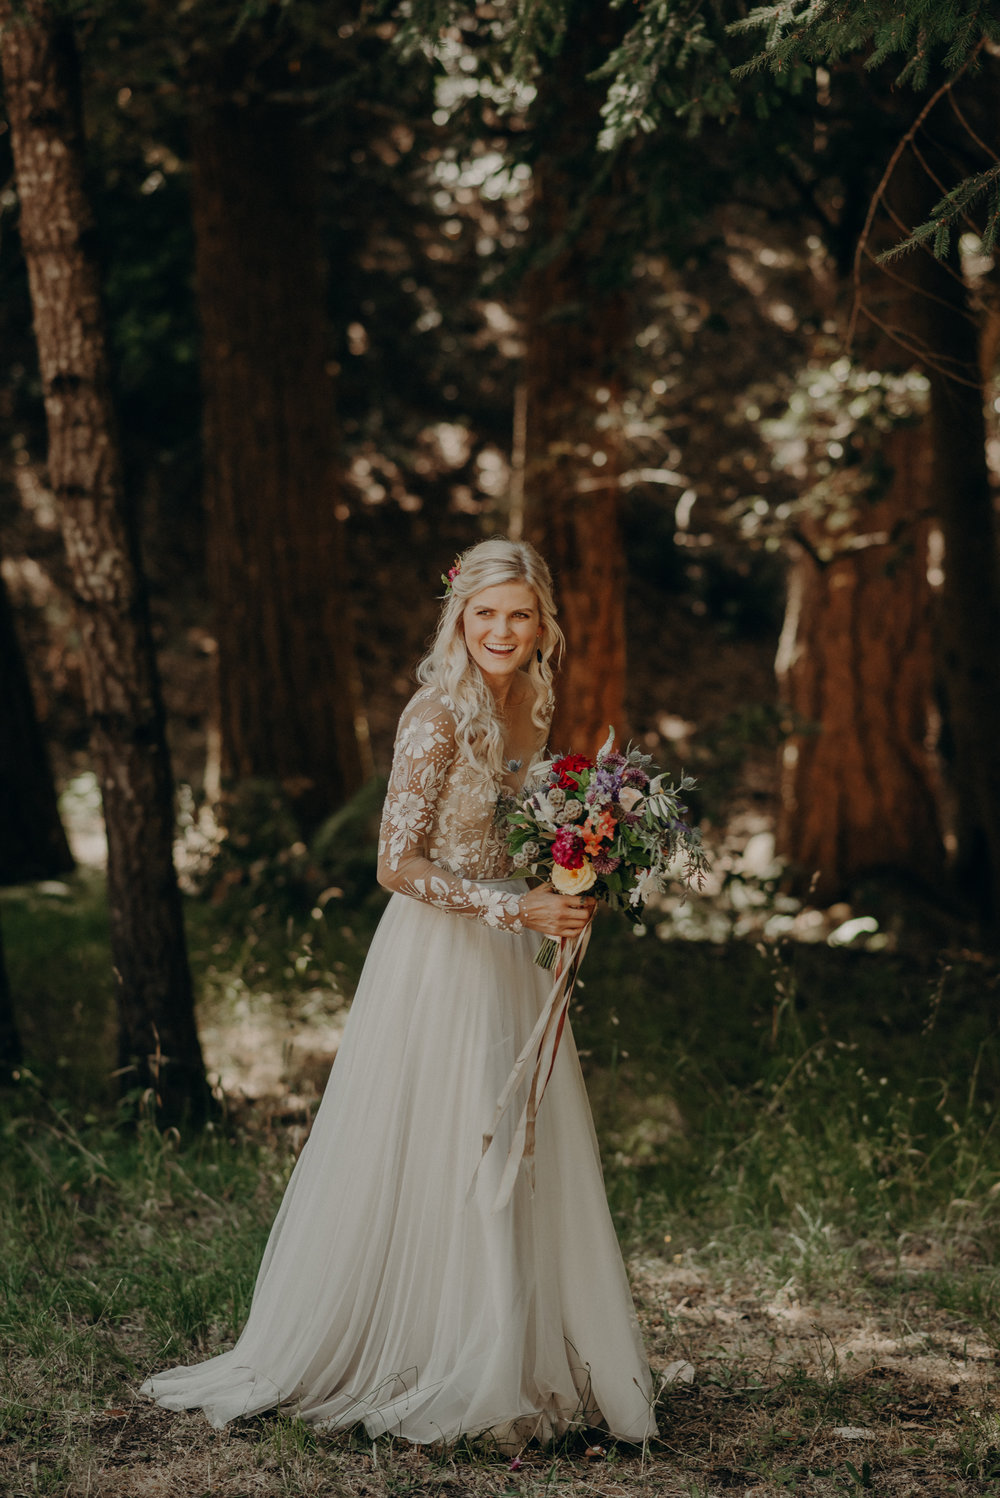 IsaiahAndTaylor.com - California Destination Elopement, Lake Leonard Reserve Wedding, Ukiah-043.jpg